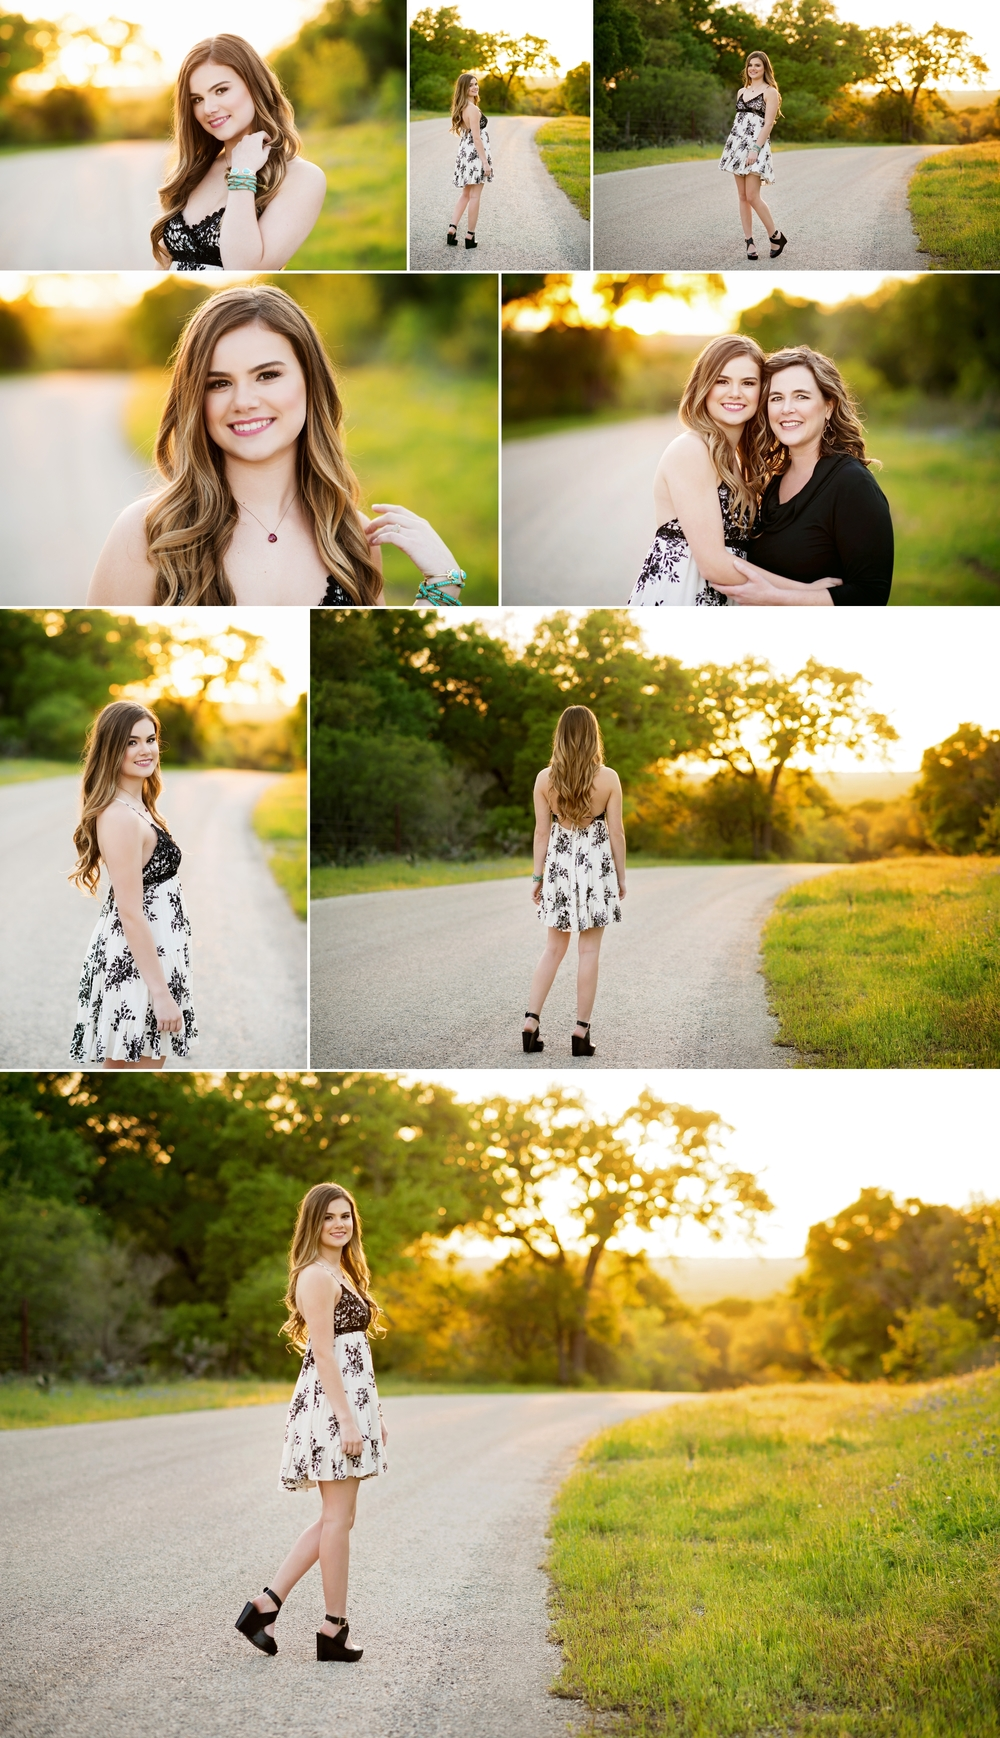 Austin Senior Portrait photography ideas by Heidi Knight Photography